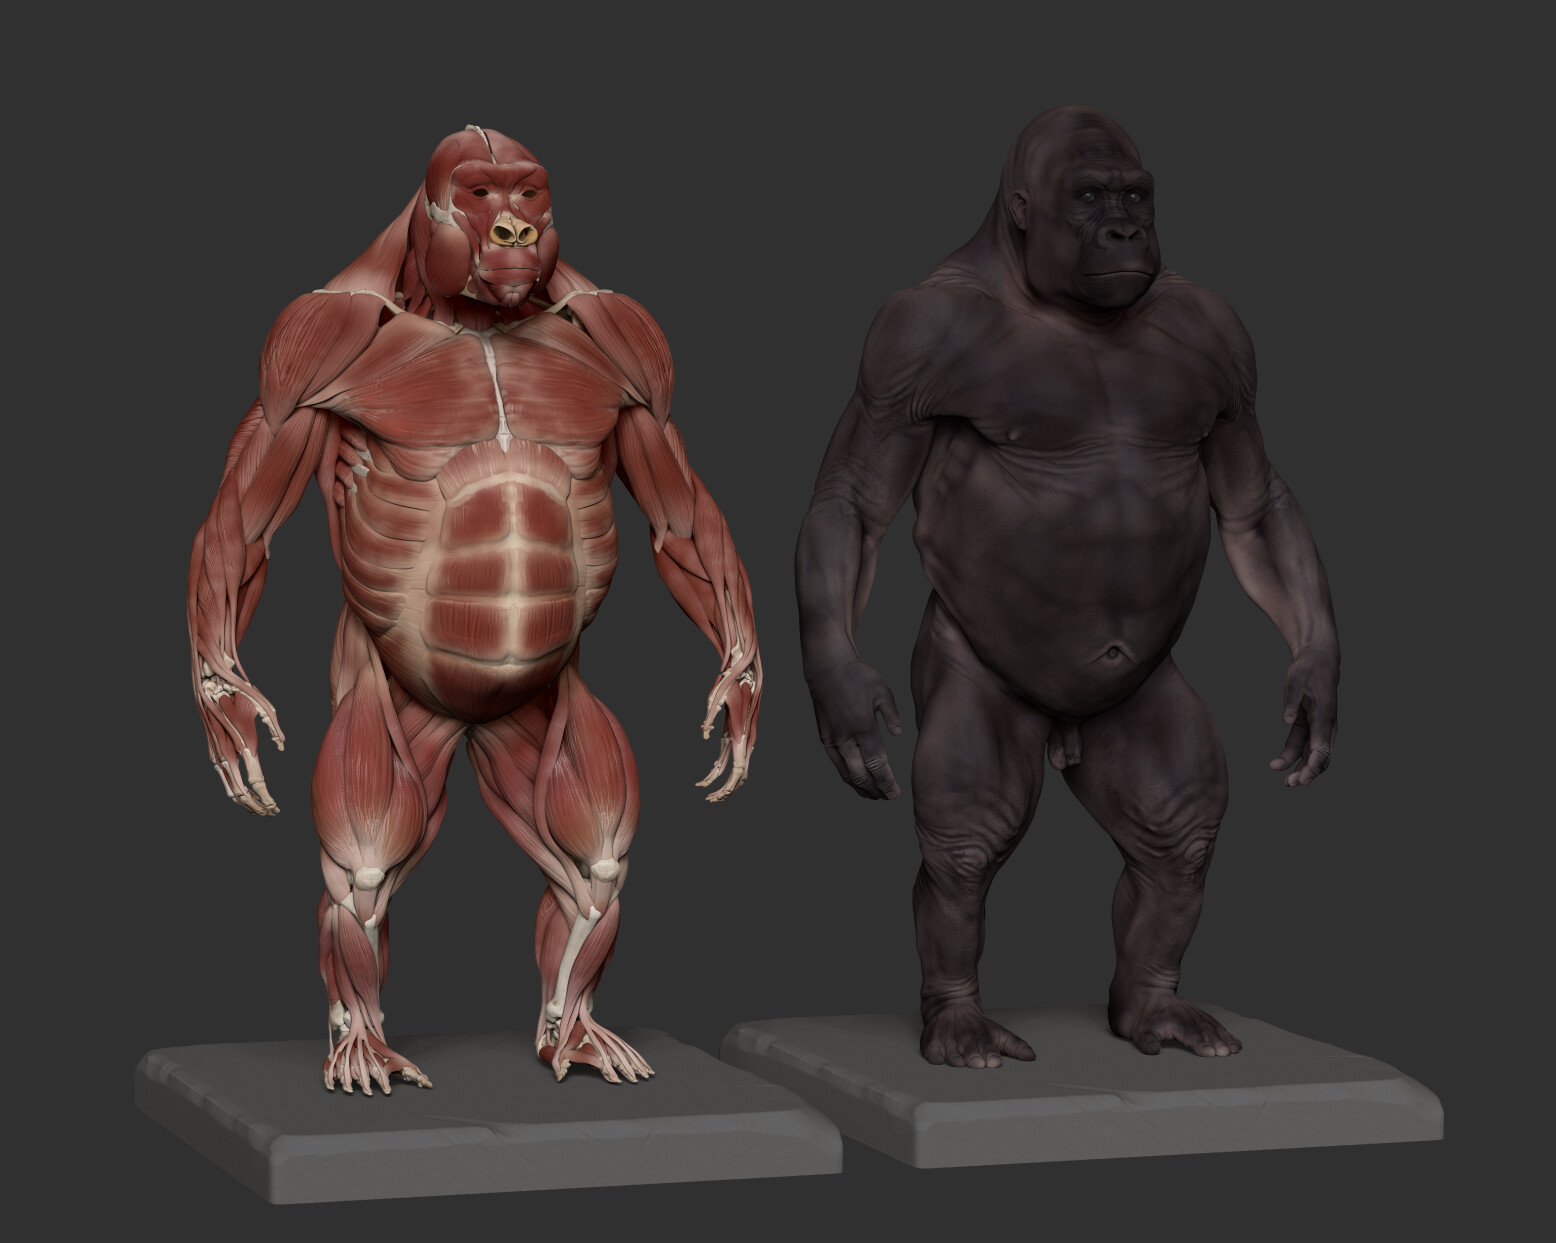 I did a quick pass of polypaint to highlight muscles' body vs tendons and aponeurosis.